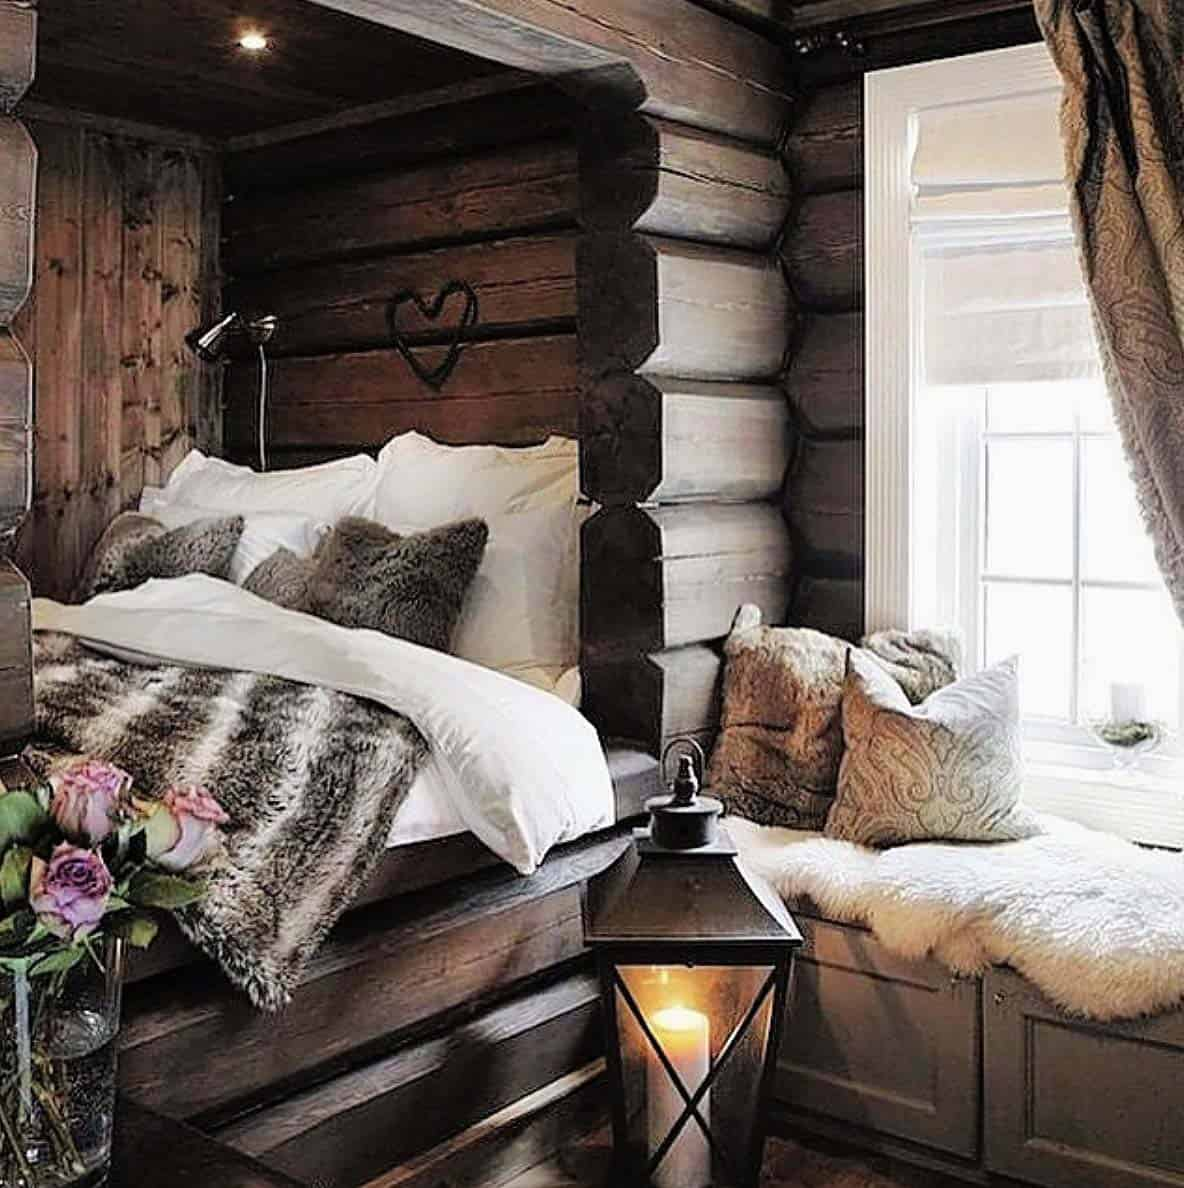 33 Ultra-cozy bedroom decorating ideas for winter warmth on Bedroom Decoration Ideas  id=56814